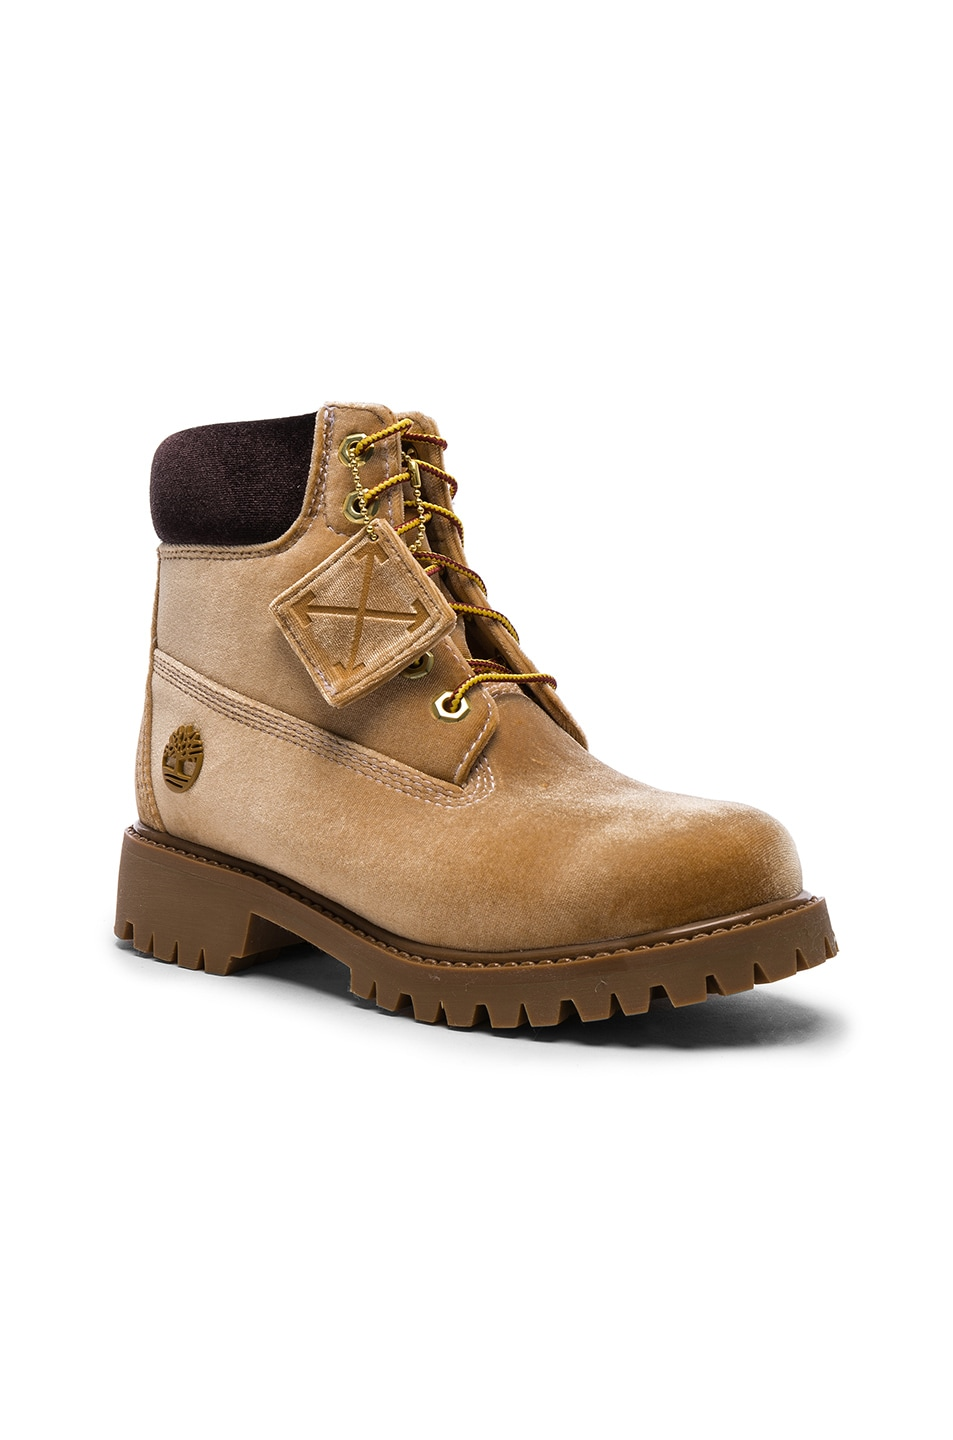 Image 2 of OFF-WHITE x Timberland Velvet Hiking Boots in Camel